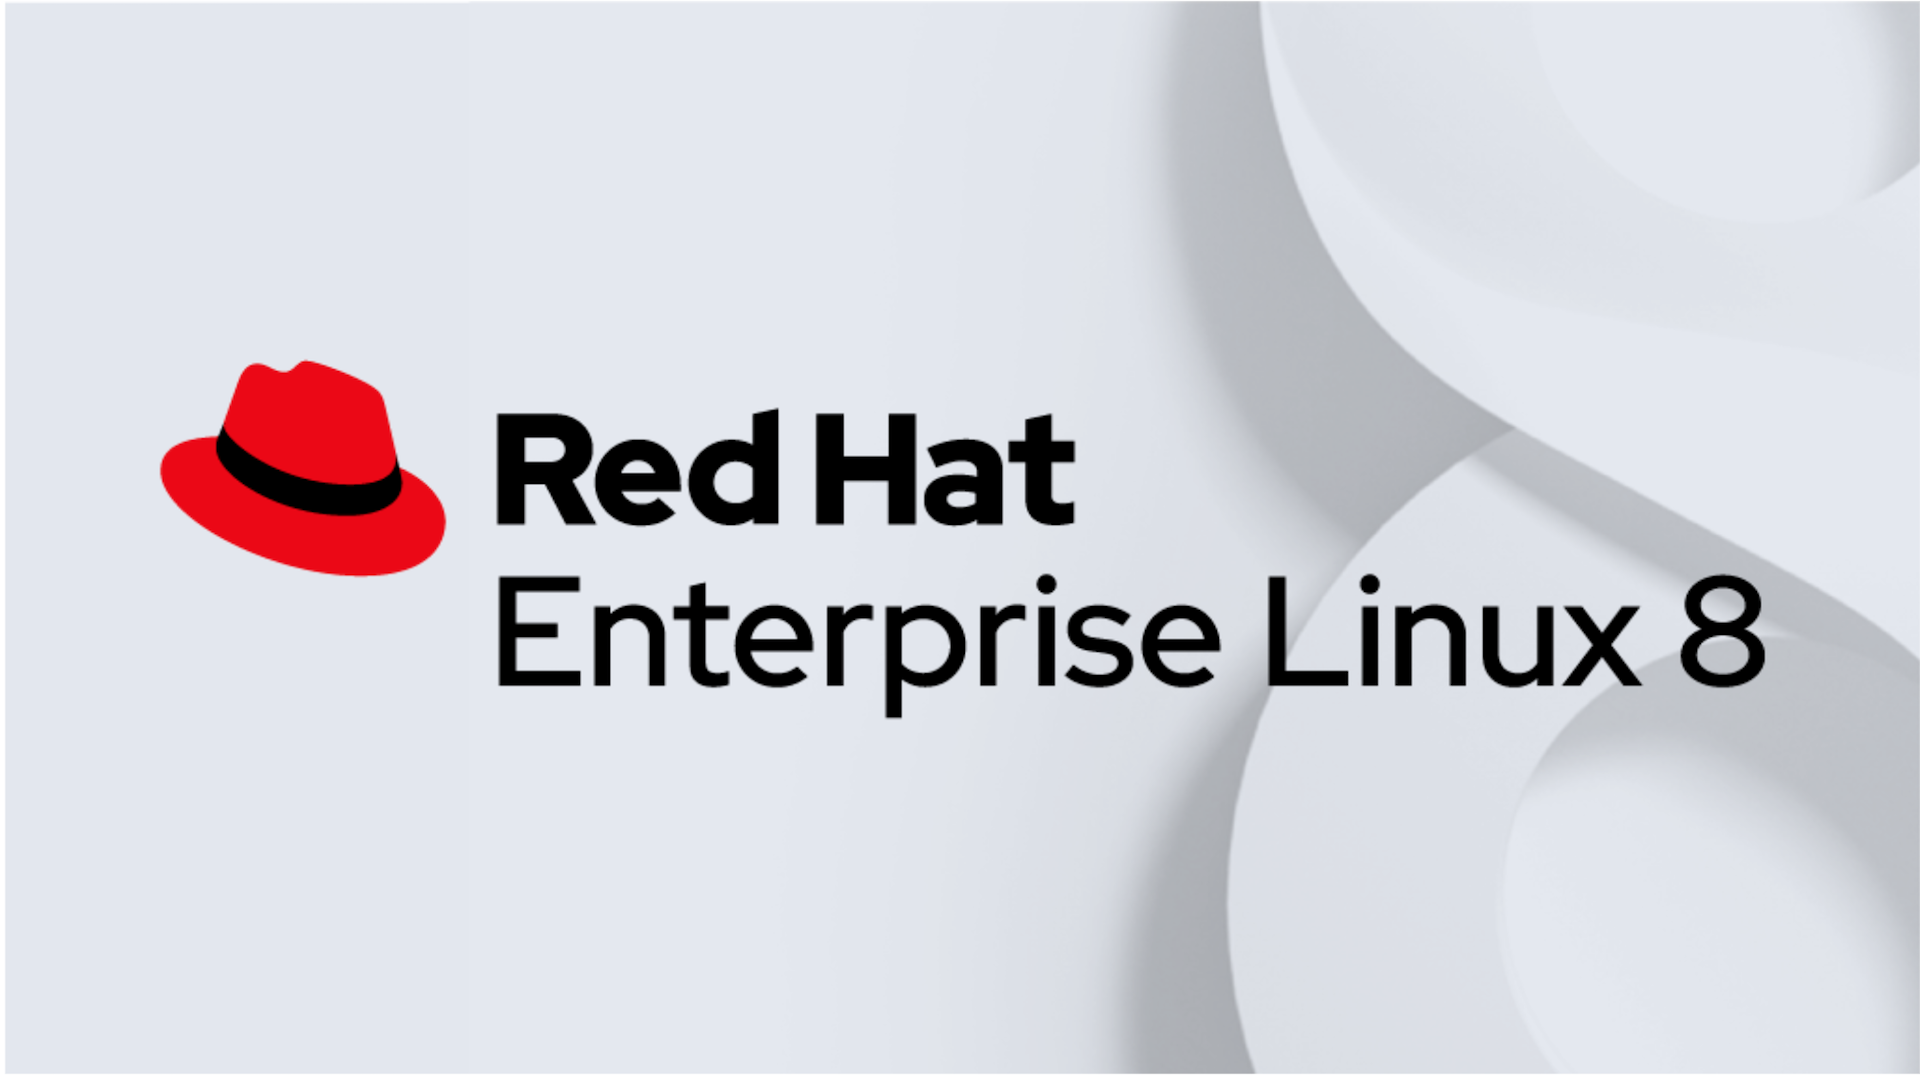 Quickly set up a LAMP stack on Red Hat Enterprise Linux 8